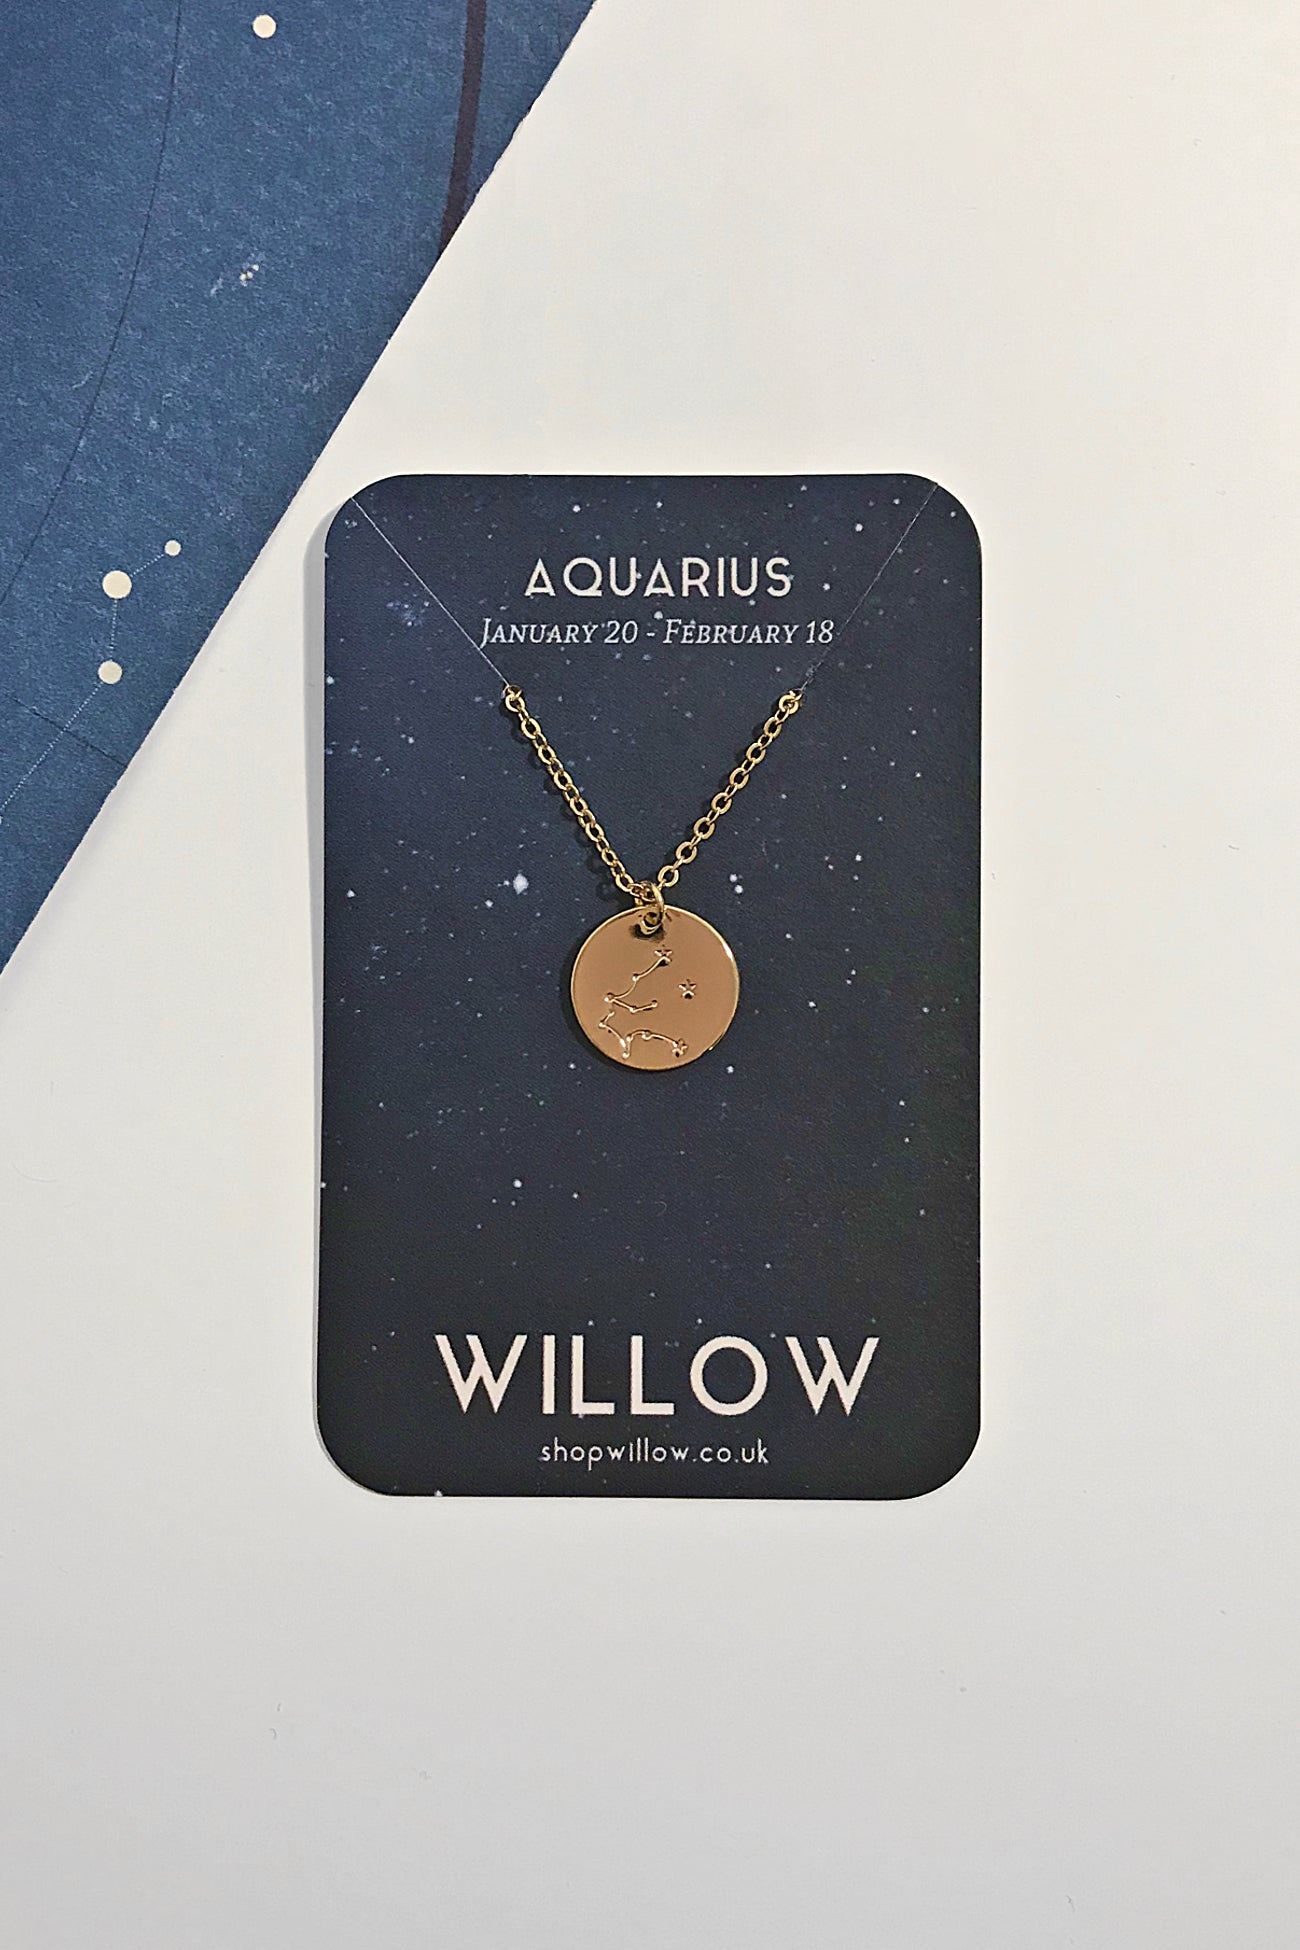 Aquarius constellation disc necklace